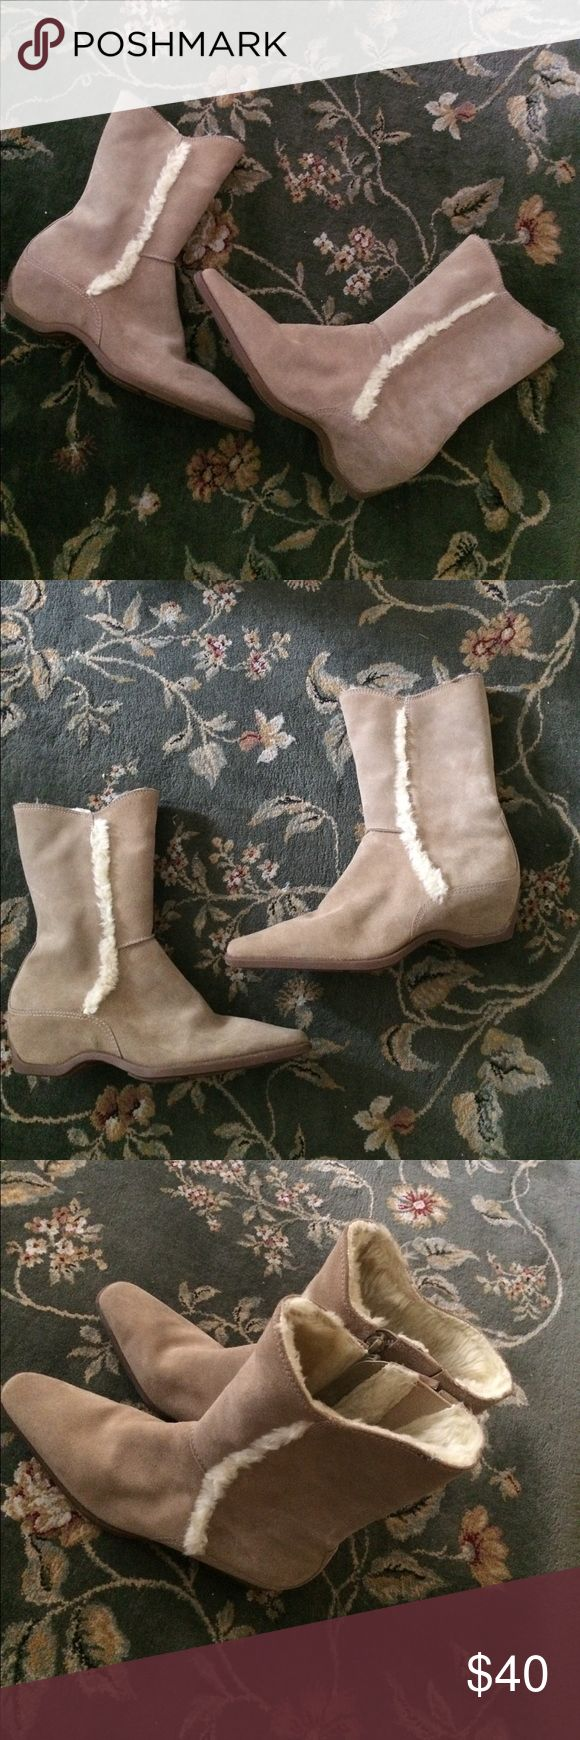 """Hush Puppies """" cocoa """" boots NWOT! Hush Puppies brand """" cocoa """" genuine suede boots.color/ cream . Size- 7 . Zip up closure. Rubber soles. Faux fur shearling. Small wedge heels. Made in Brazil. Adorable!! Hush Puppies Shoes Ankle Boots & Booties"""